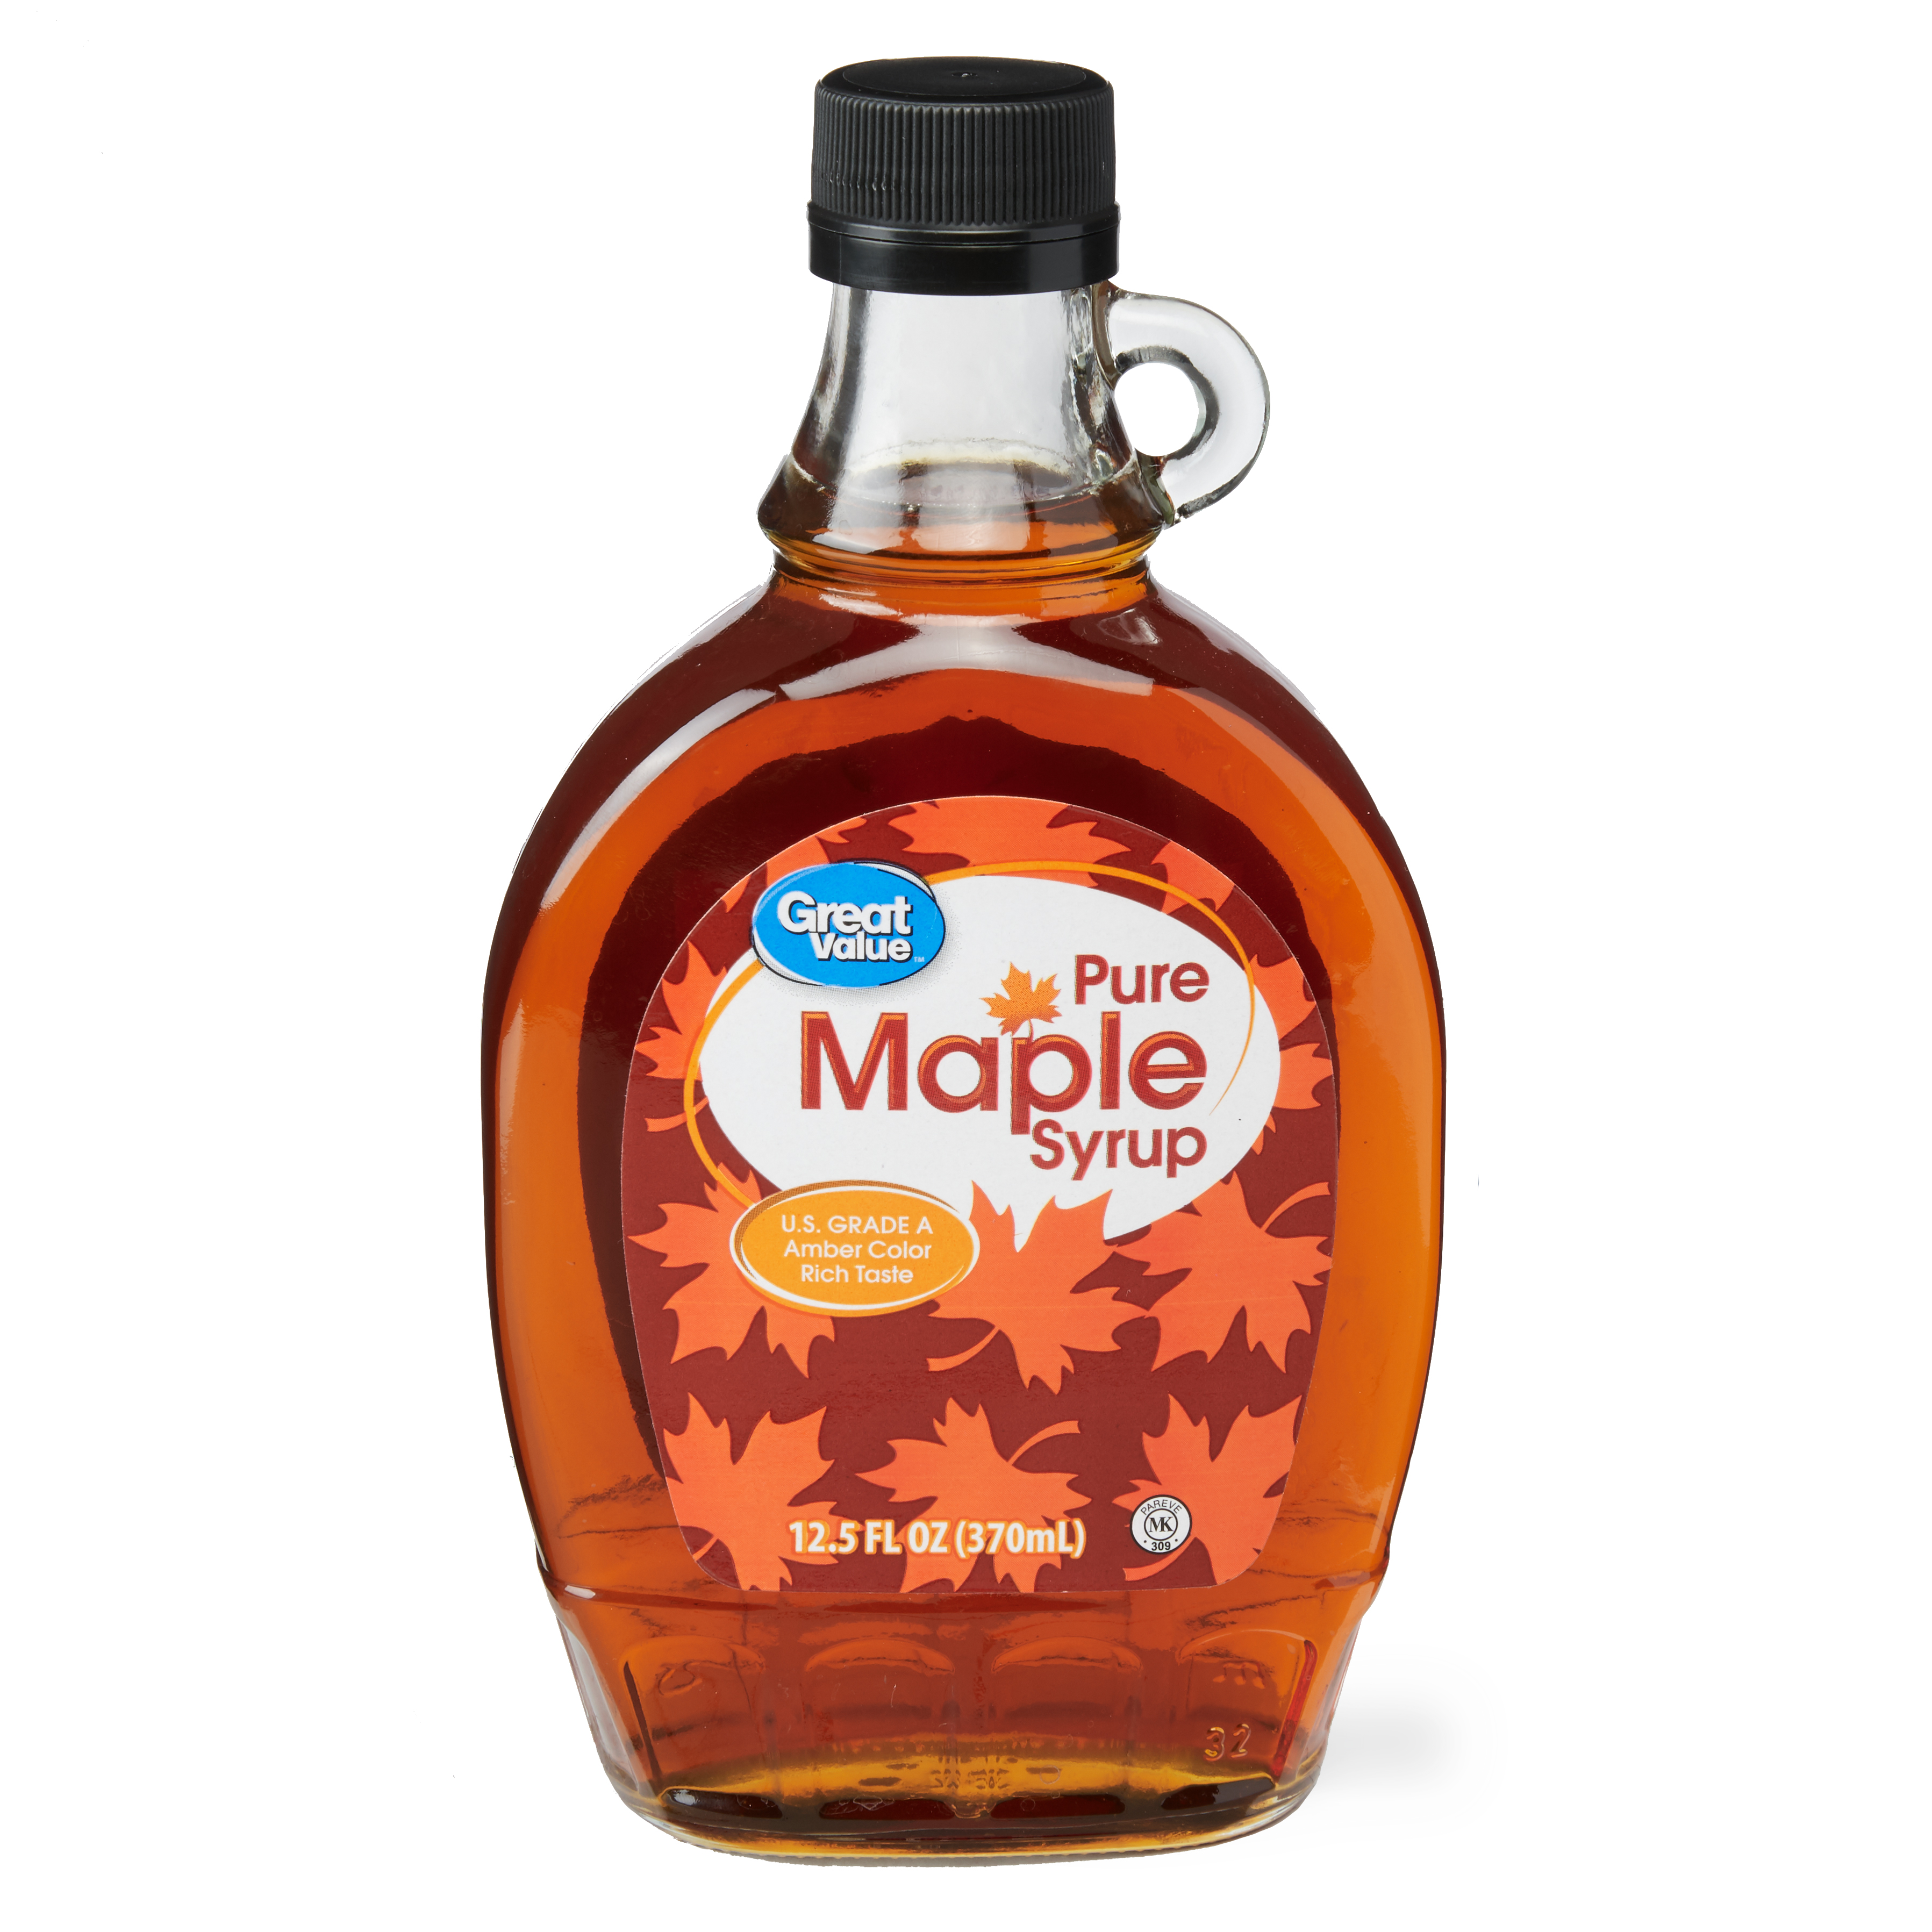 Great Value Pure Maple Syrup, 12.5 fl oz